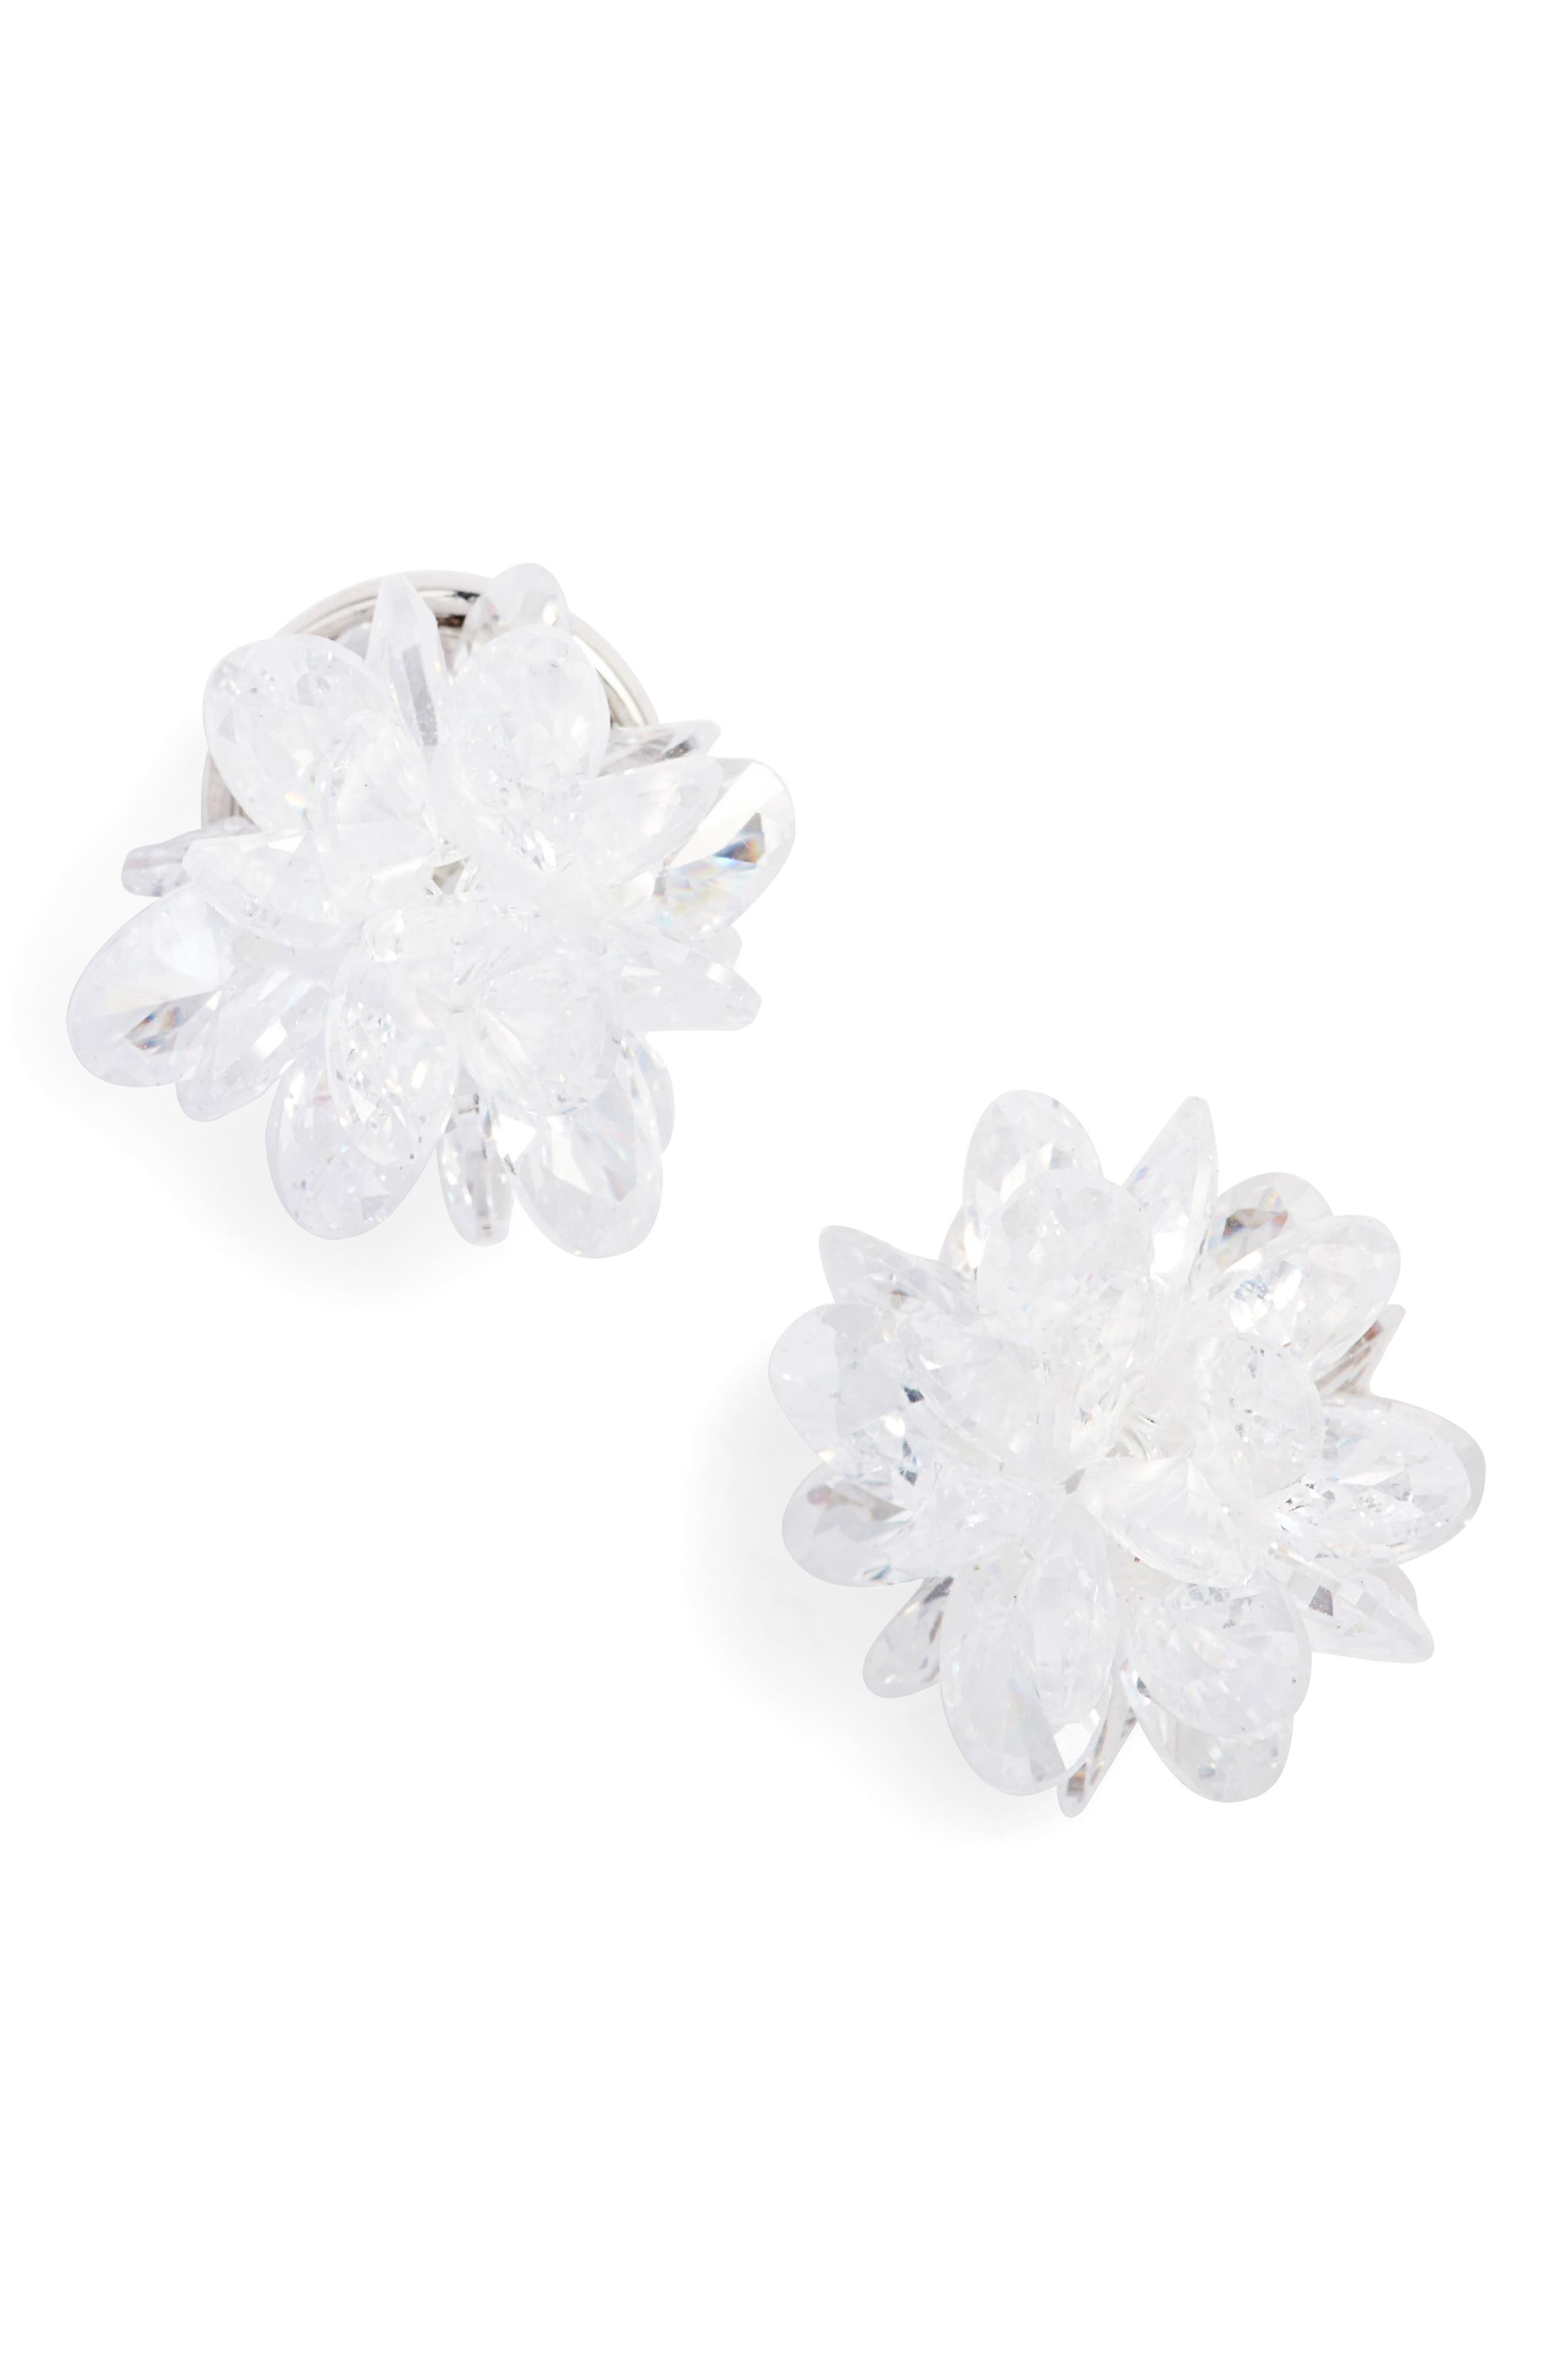 Main Image - kate spade new york flying colors rock candy stud earrings